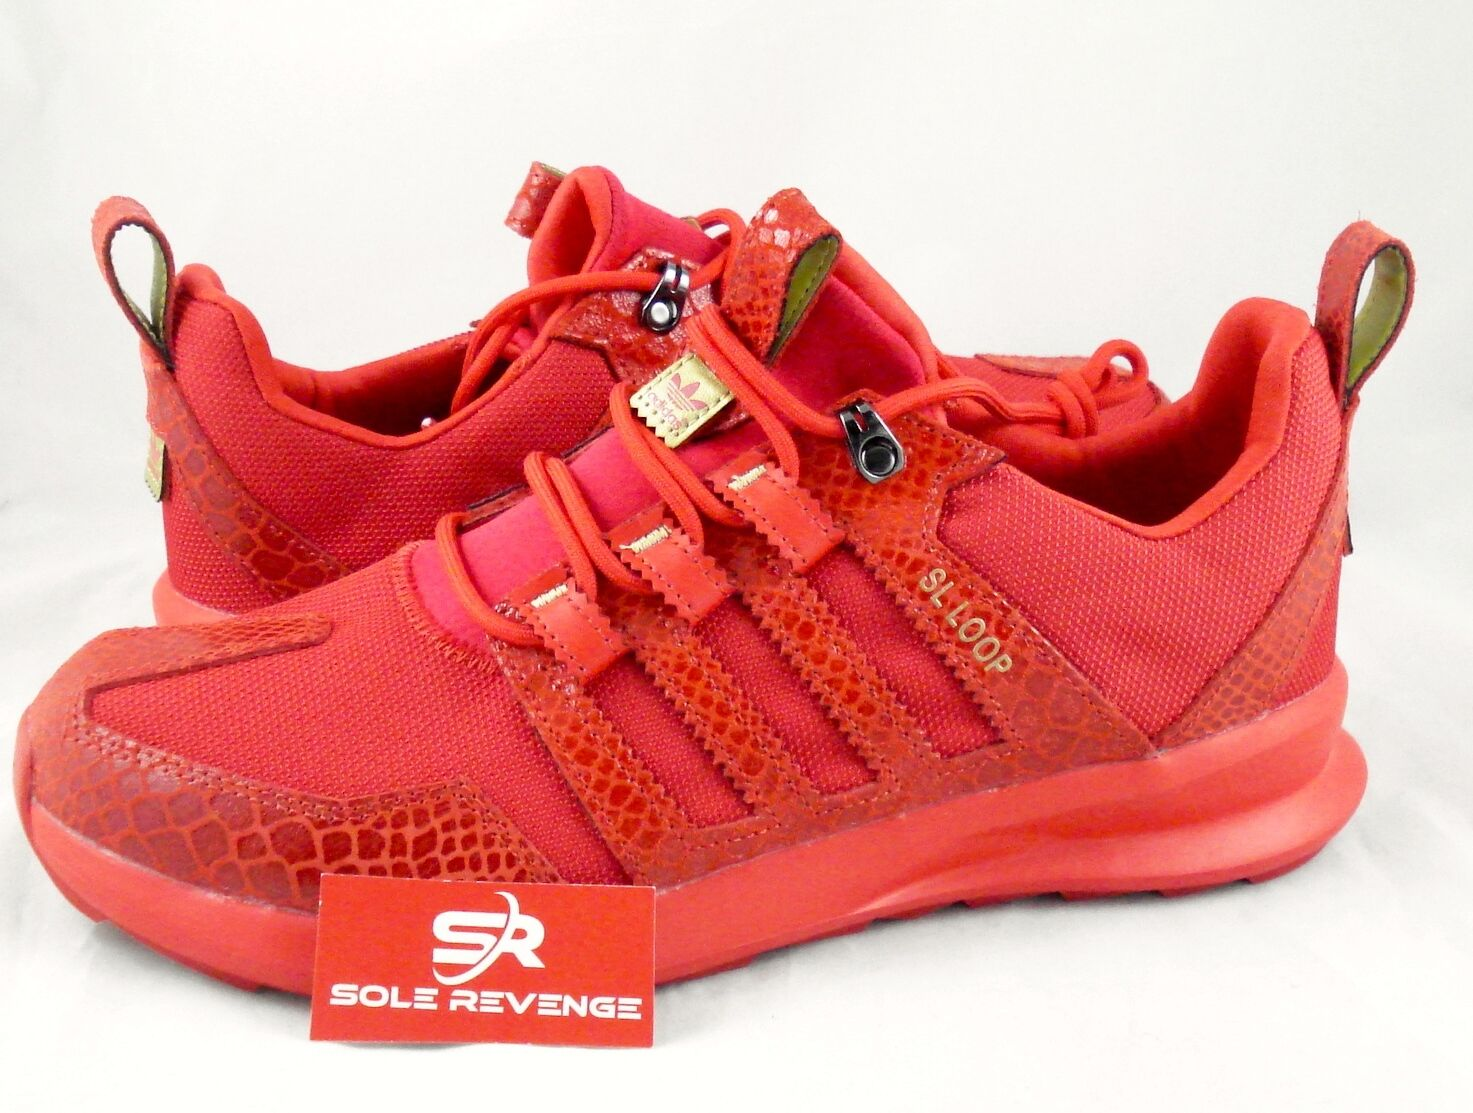 Nouveau Adidas Originals SL LOOP courirNER Reptile Trail crocodile rouge TR S85682